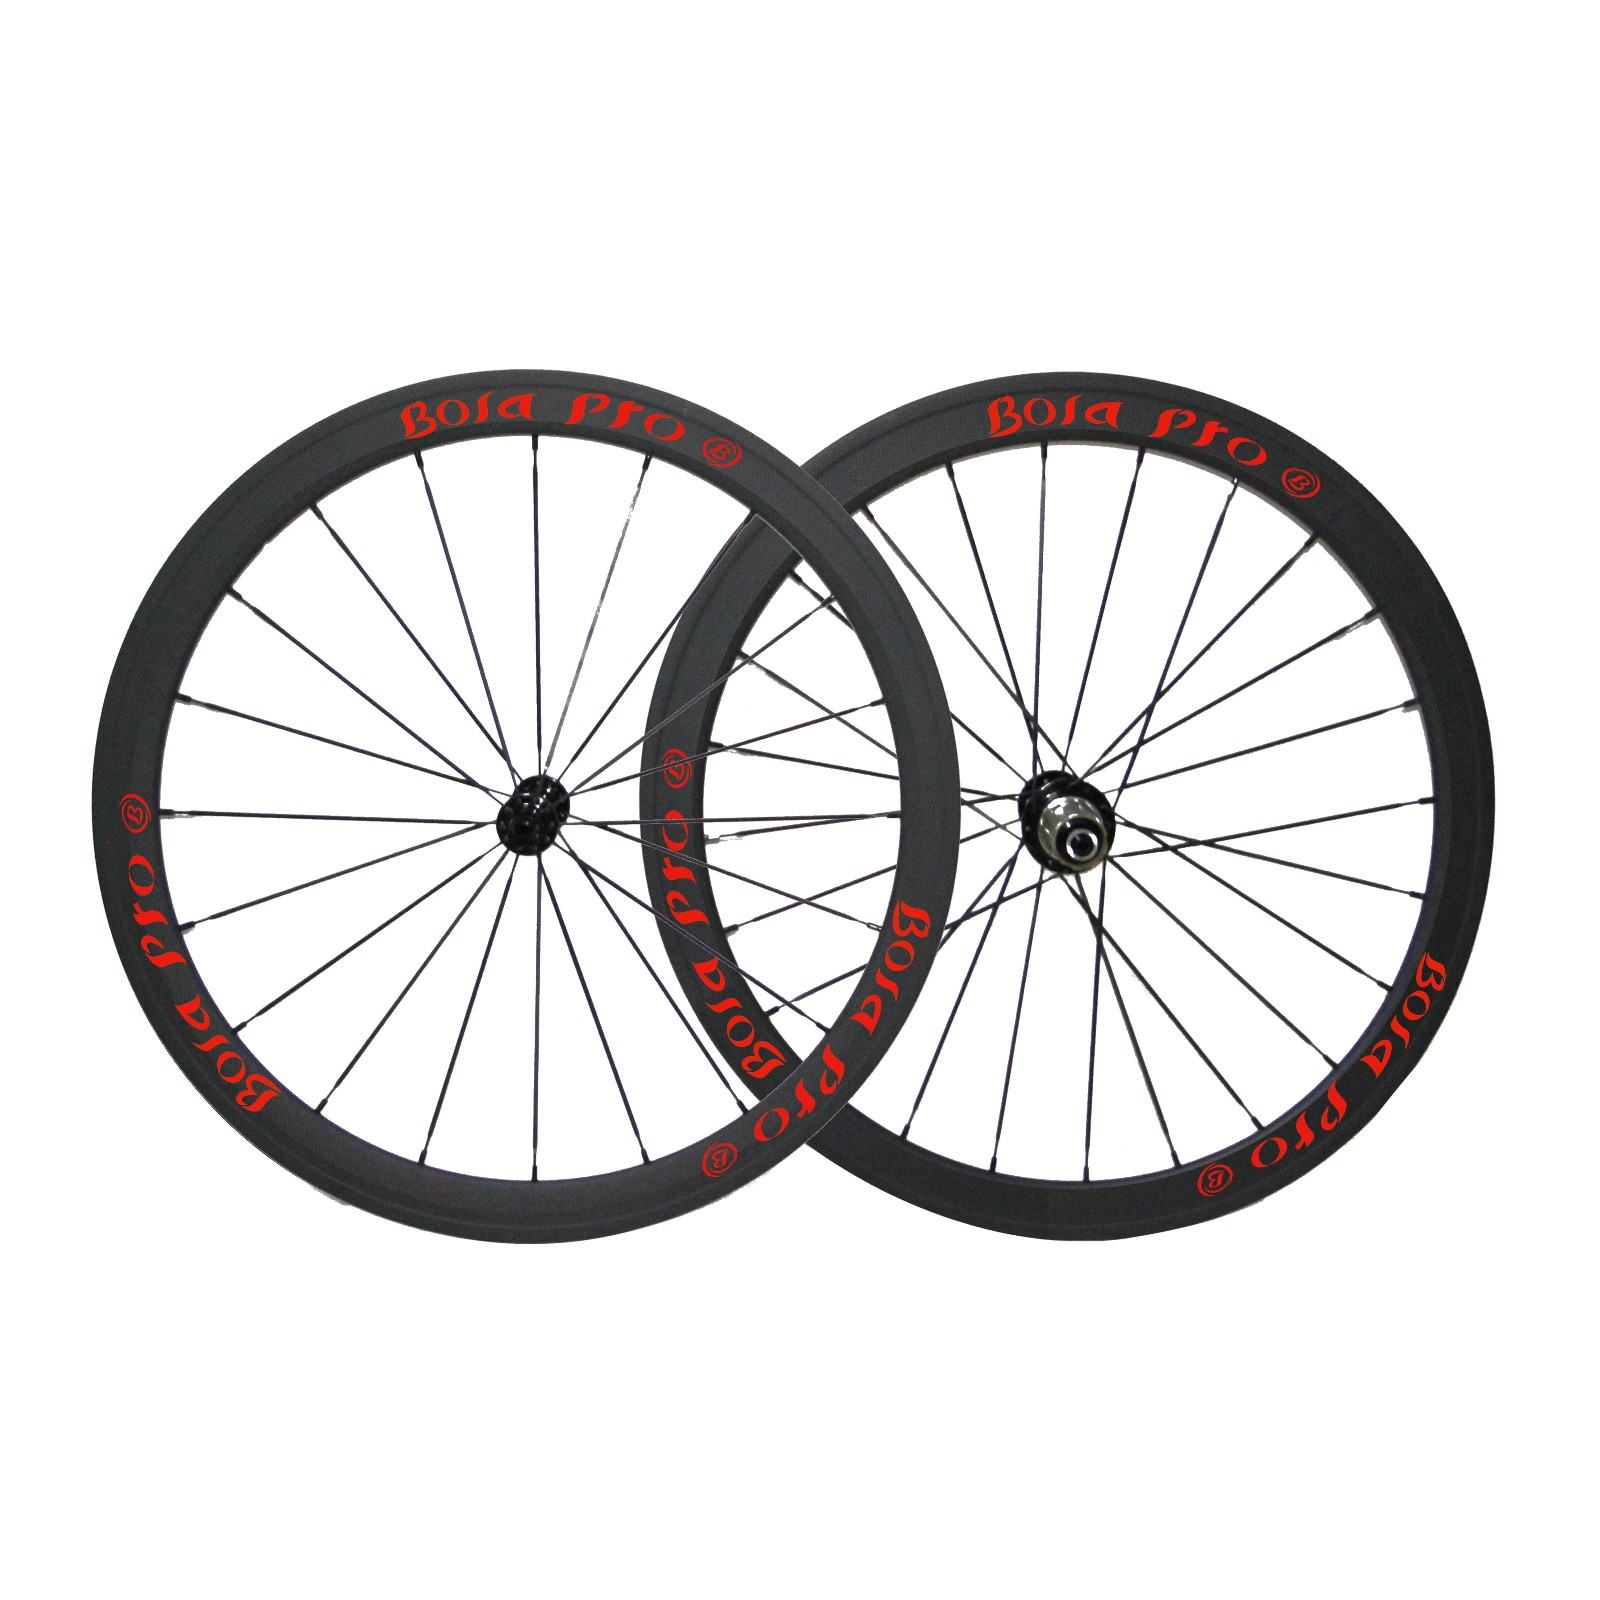 700C 38mm carbon wheelset with DT240s